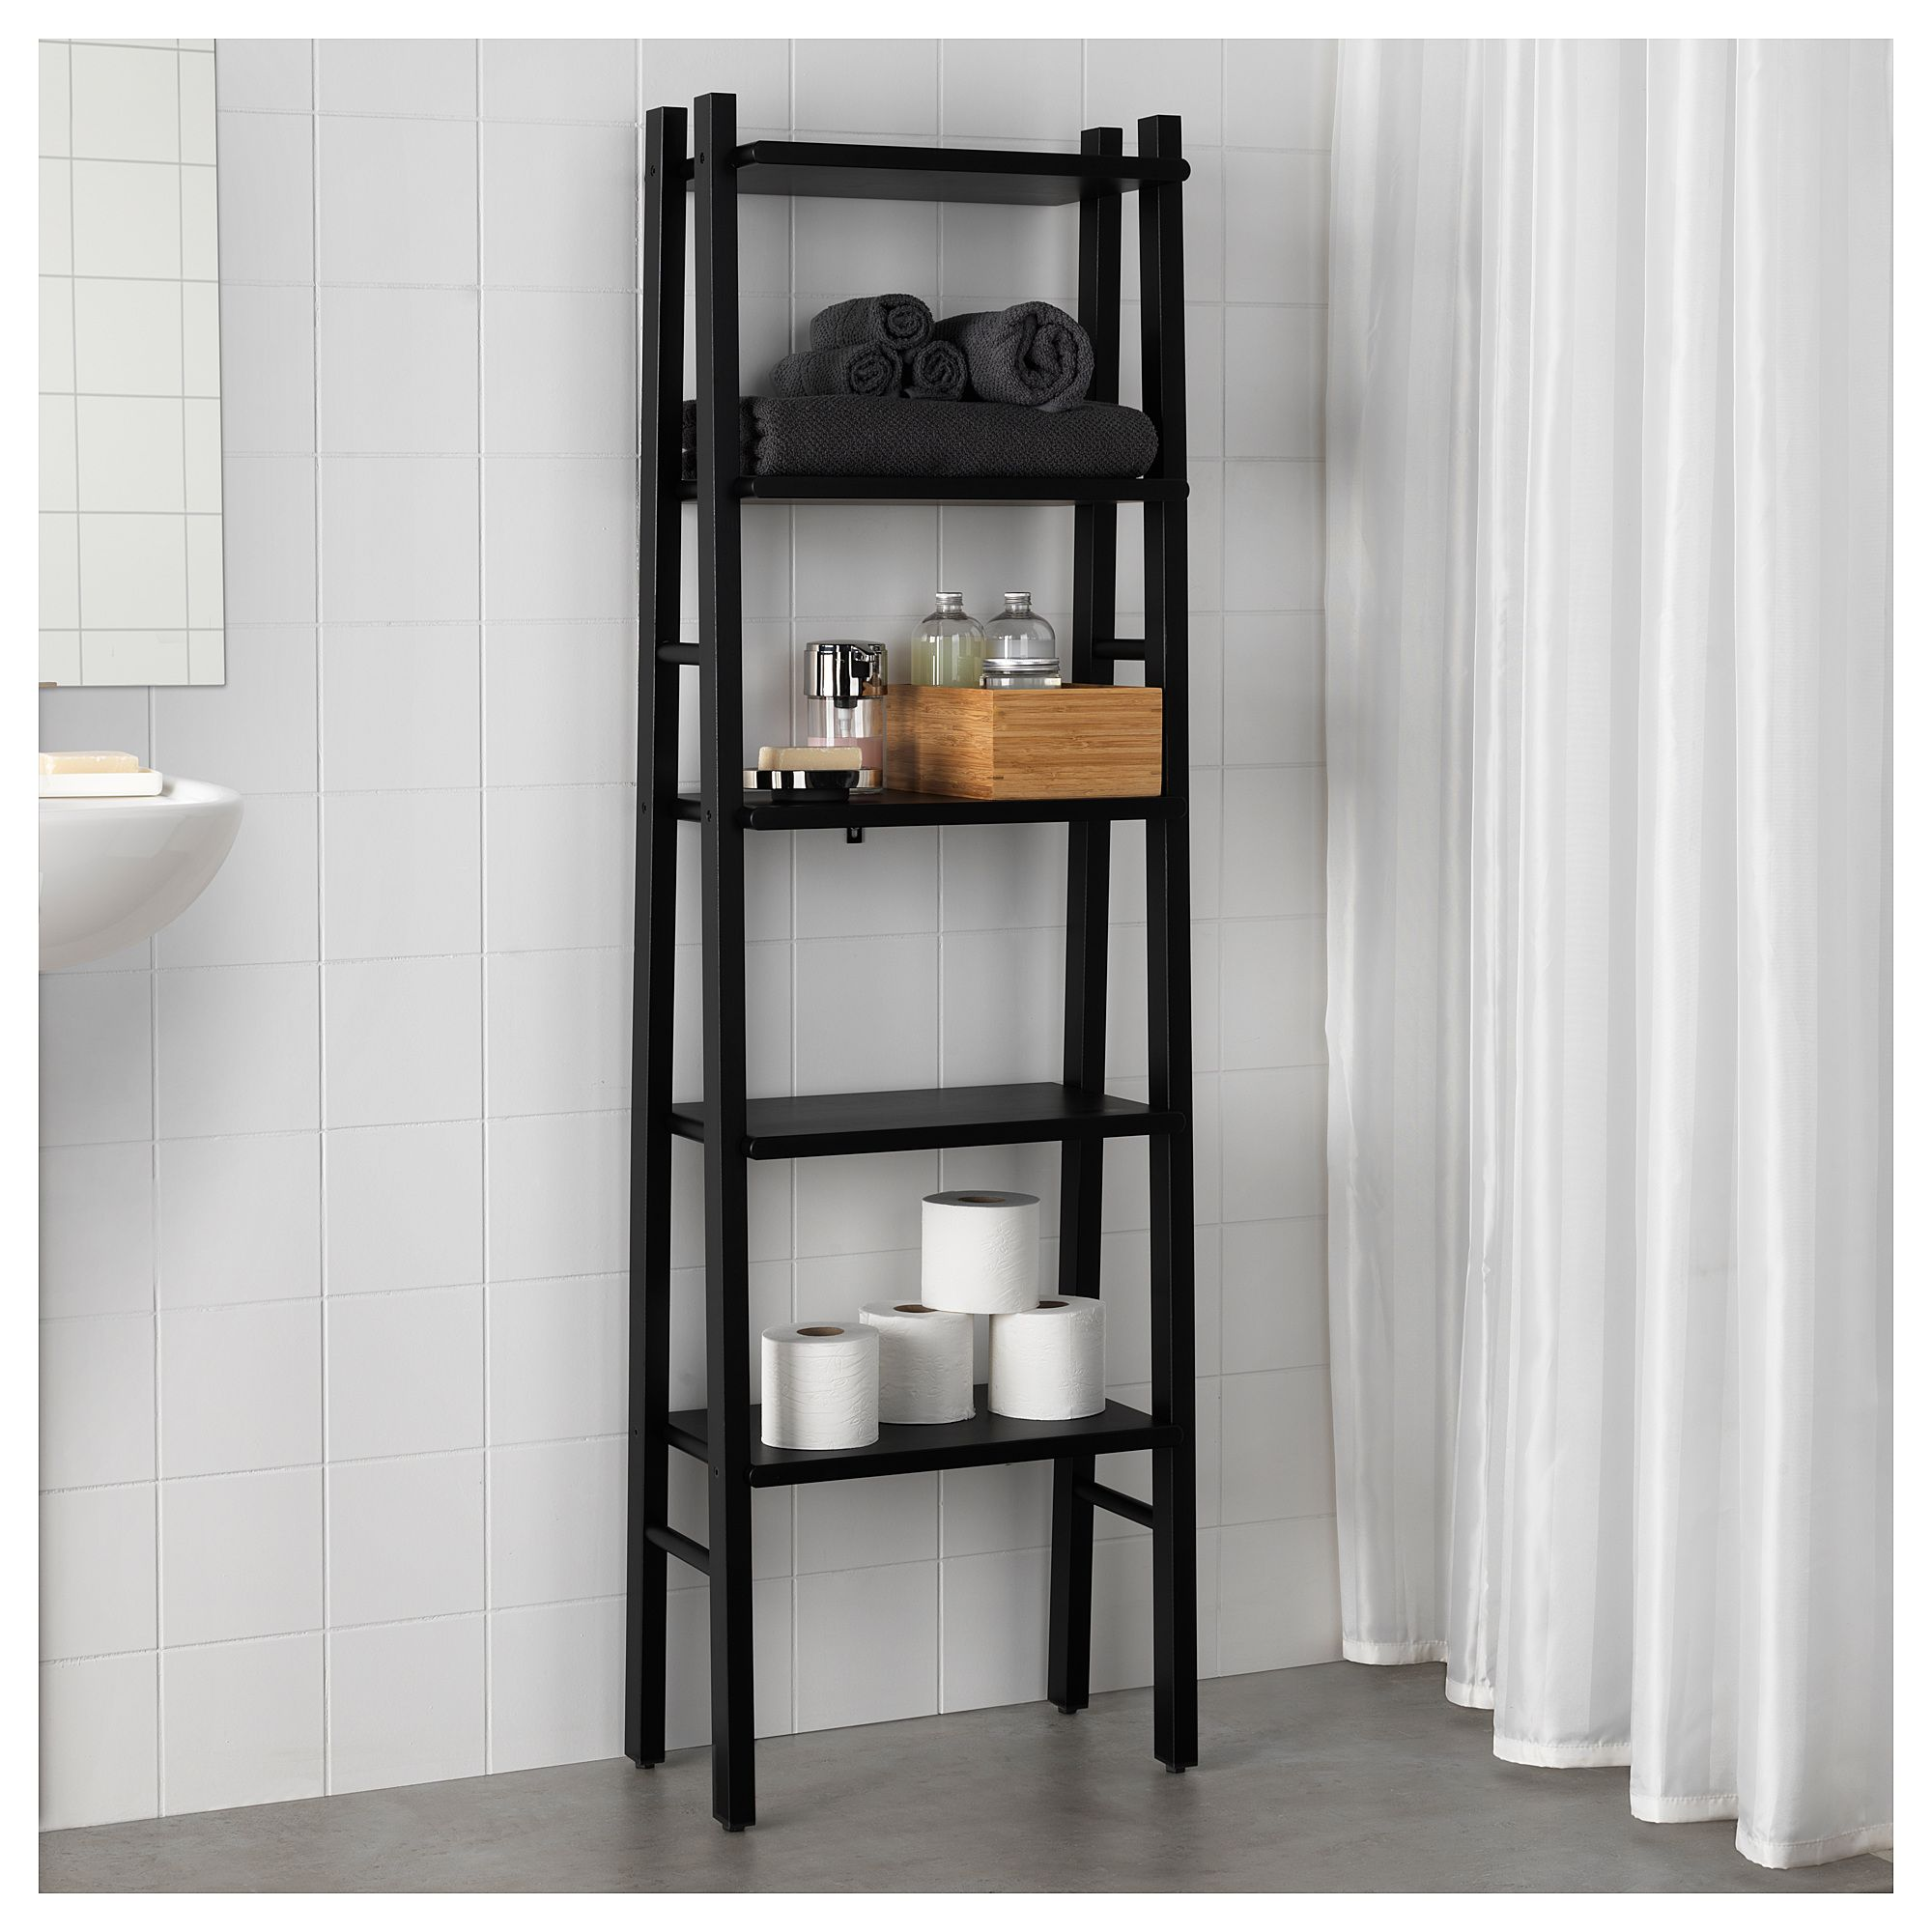 Etagere Toilette Ikea Étagère Vilto Noir In 2019 Bathroom Ideas Bathroom Shelf Unit